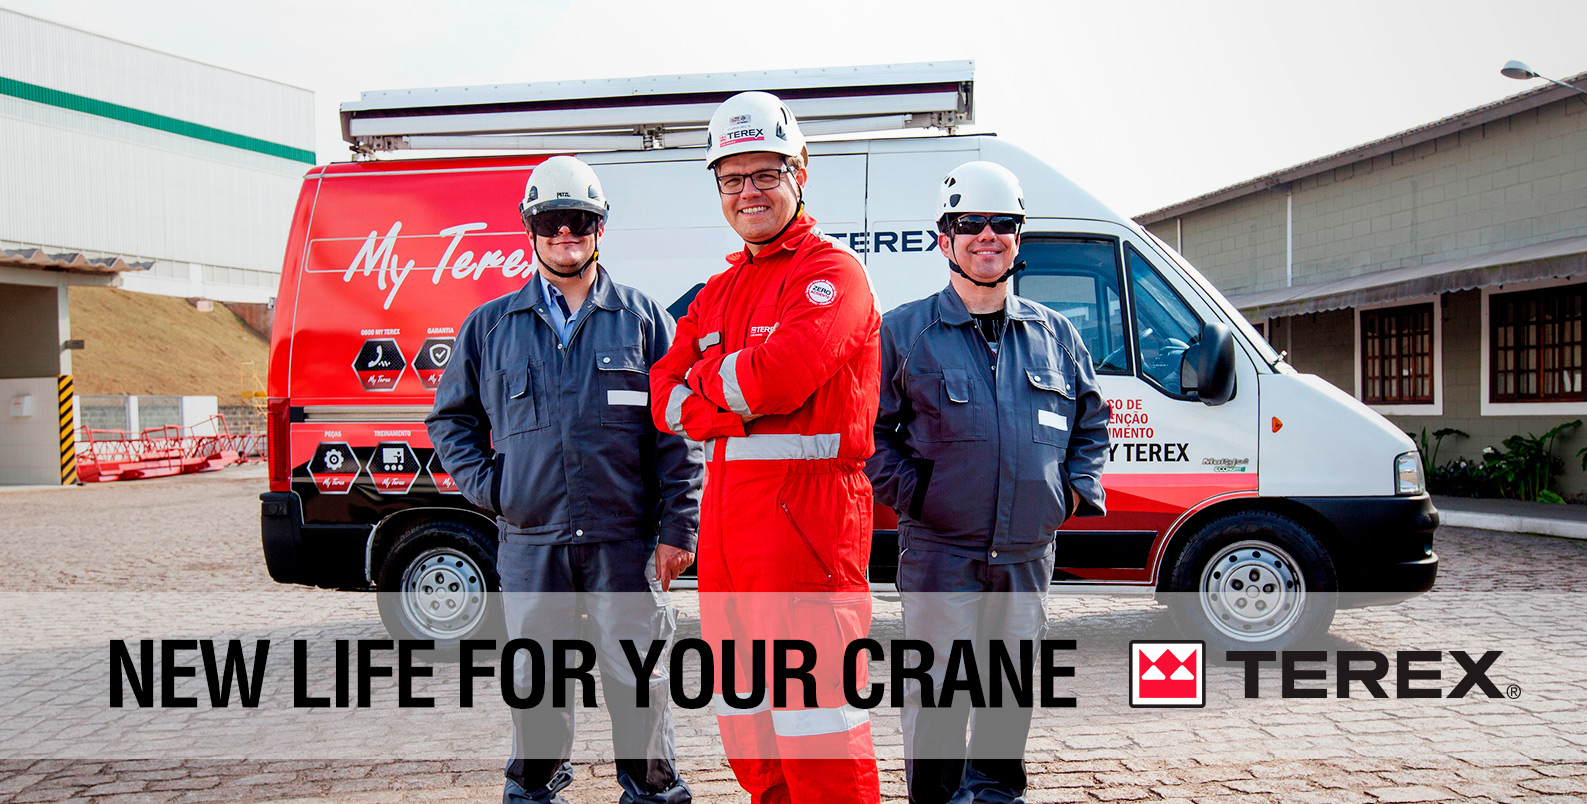 2 New Life for Your Crane